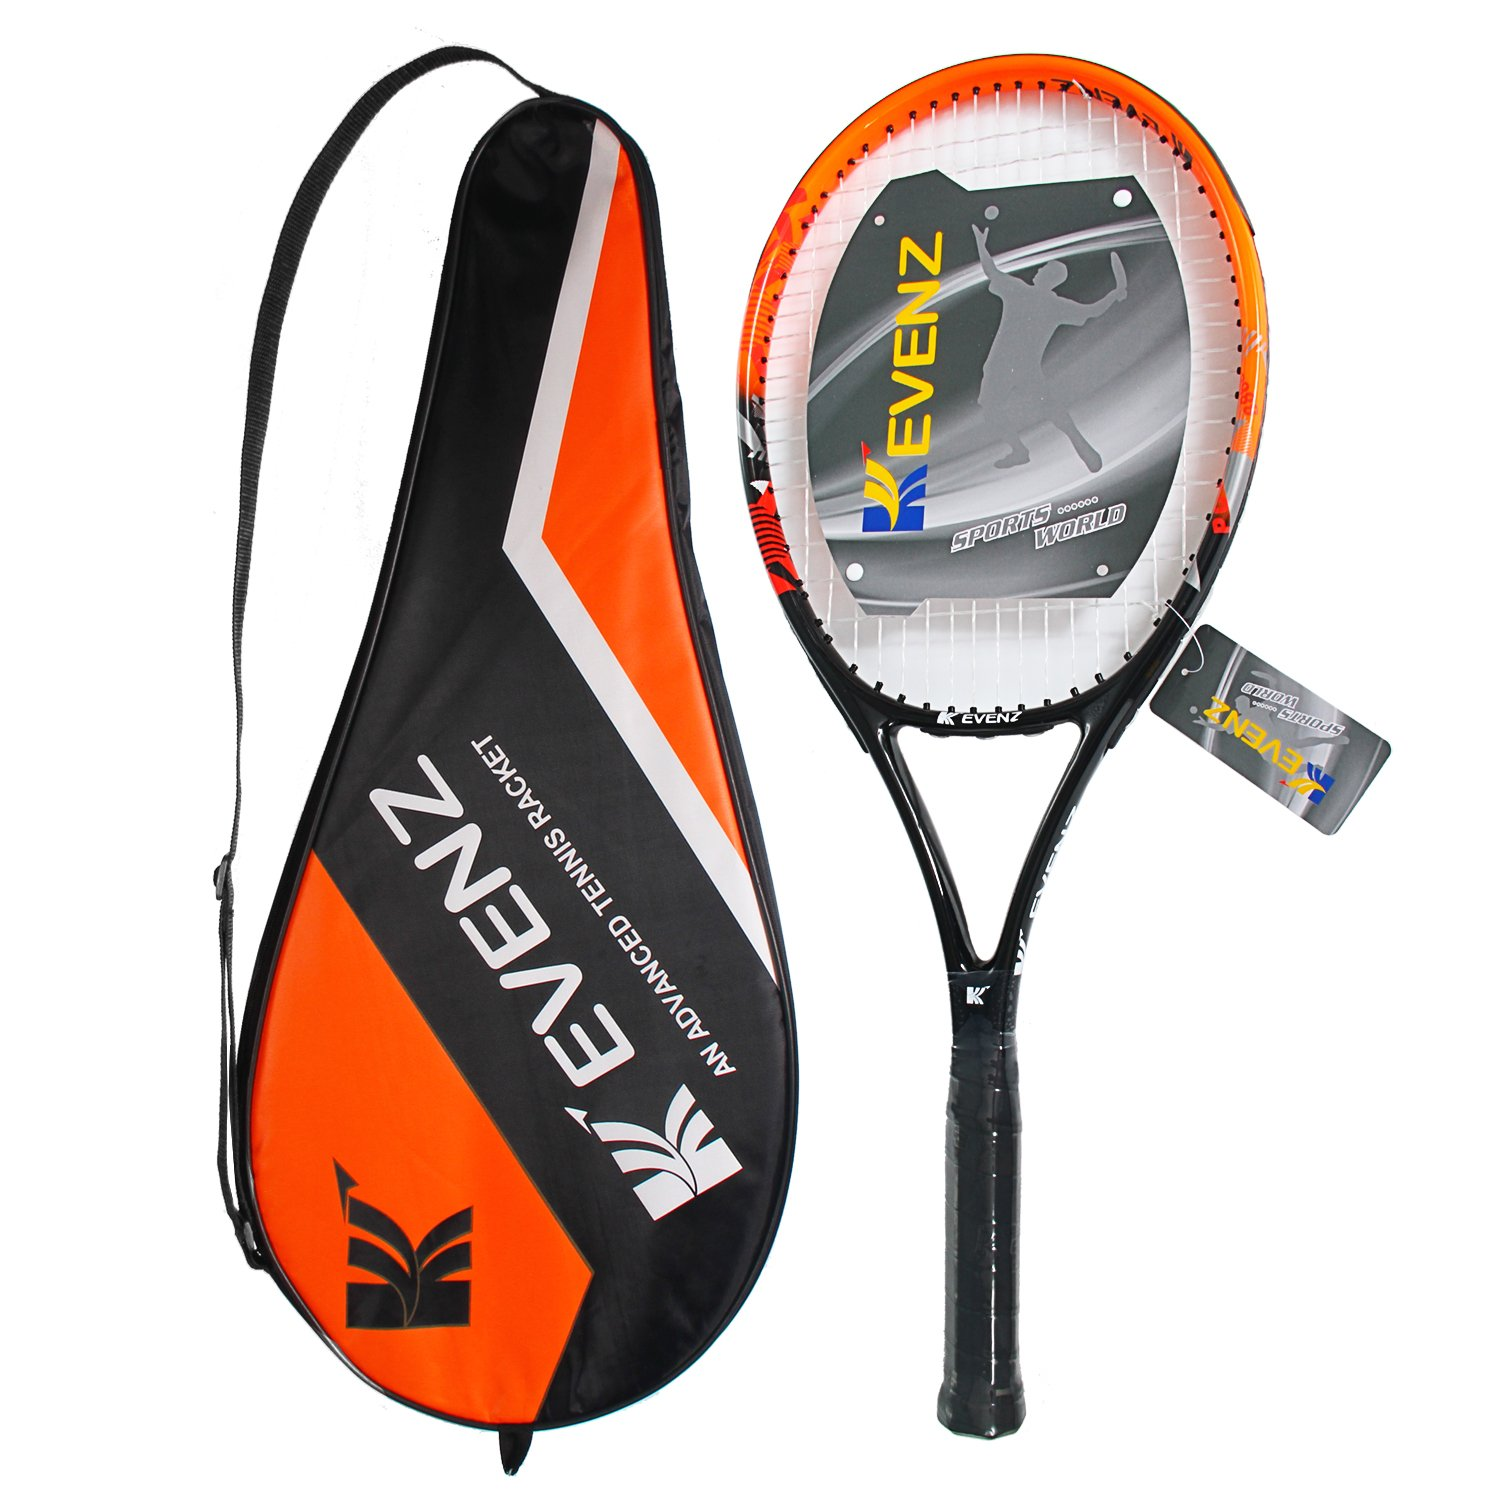 KEVENZ Green Advanced Training Tennis Balls,Practice Ball,Tennis Racket (Orange Racket) by KEVENZ (Image #3)